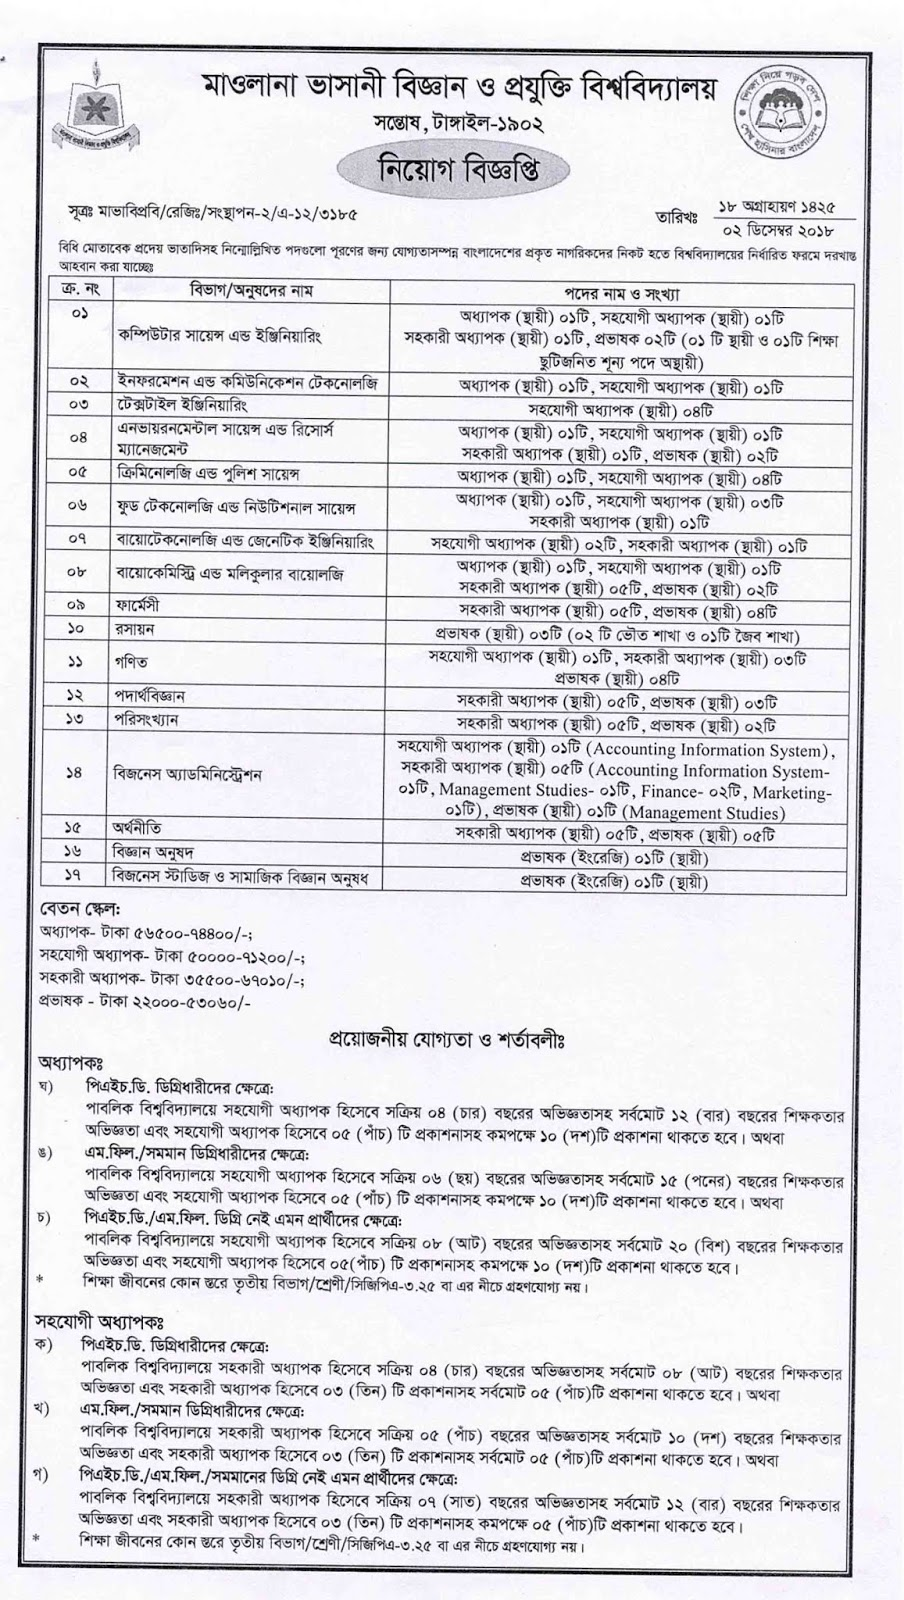 Mawlana Bhashani Science and Technology University Recruitment Circular 2018